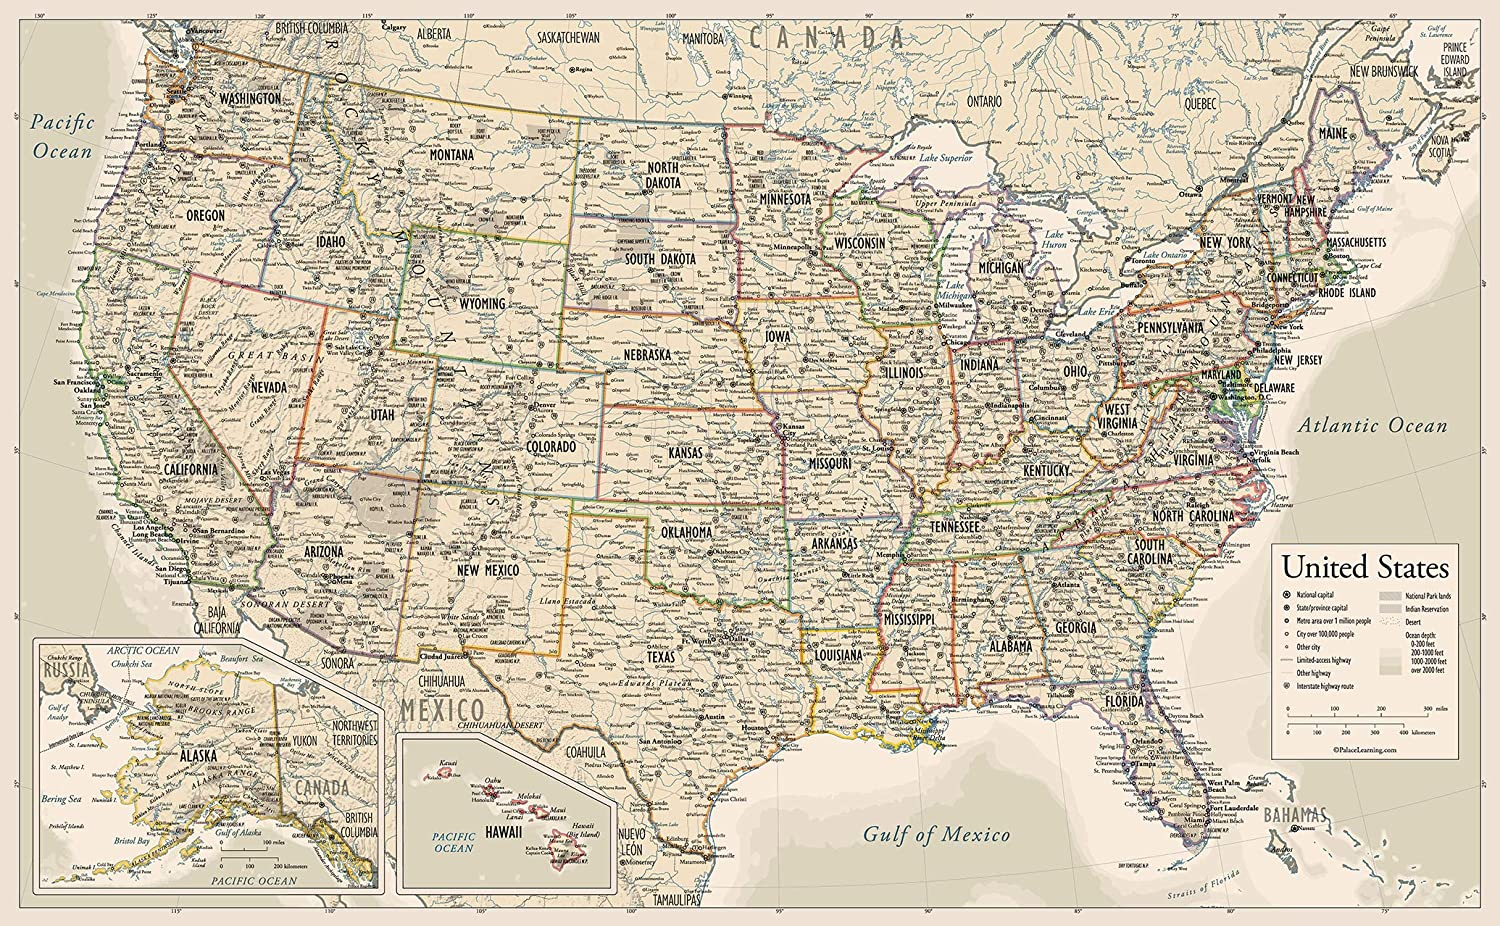 """Antique Style USA Map - Wall Chart Map of The United States of America - Made in The USA - Updated for 2020 (Laminated, 18"""" x 29"""")"""